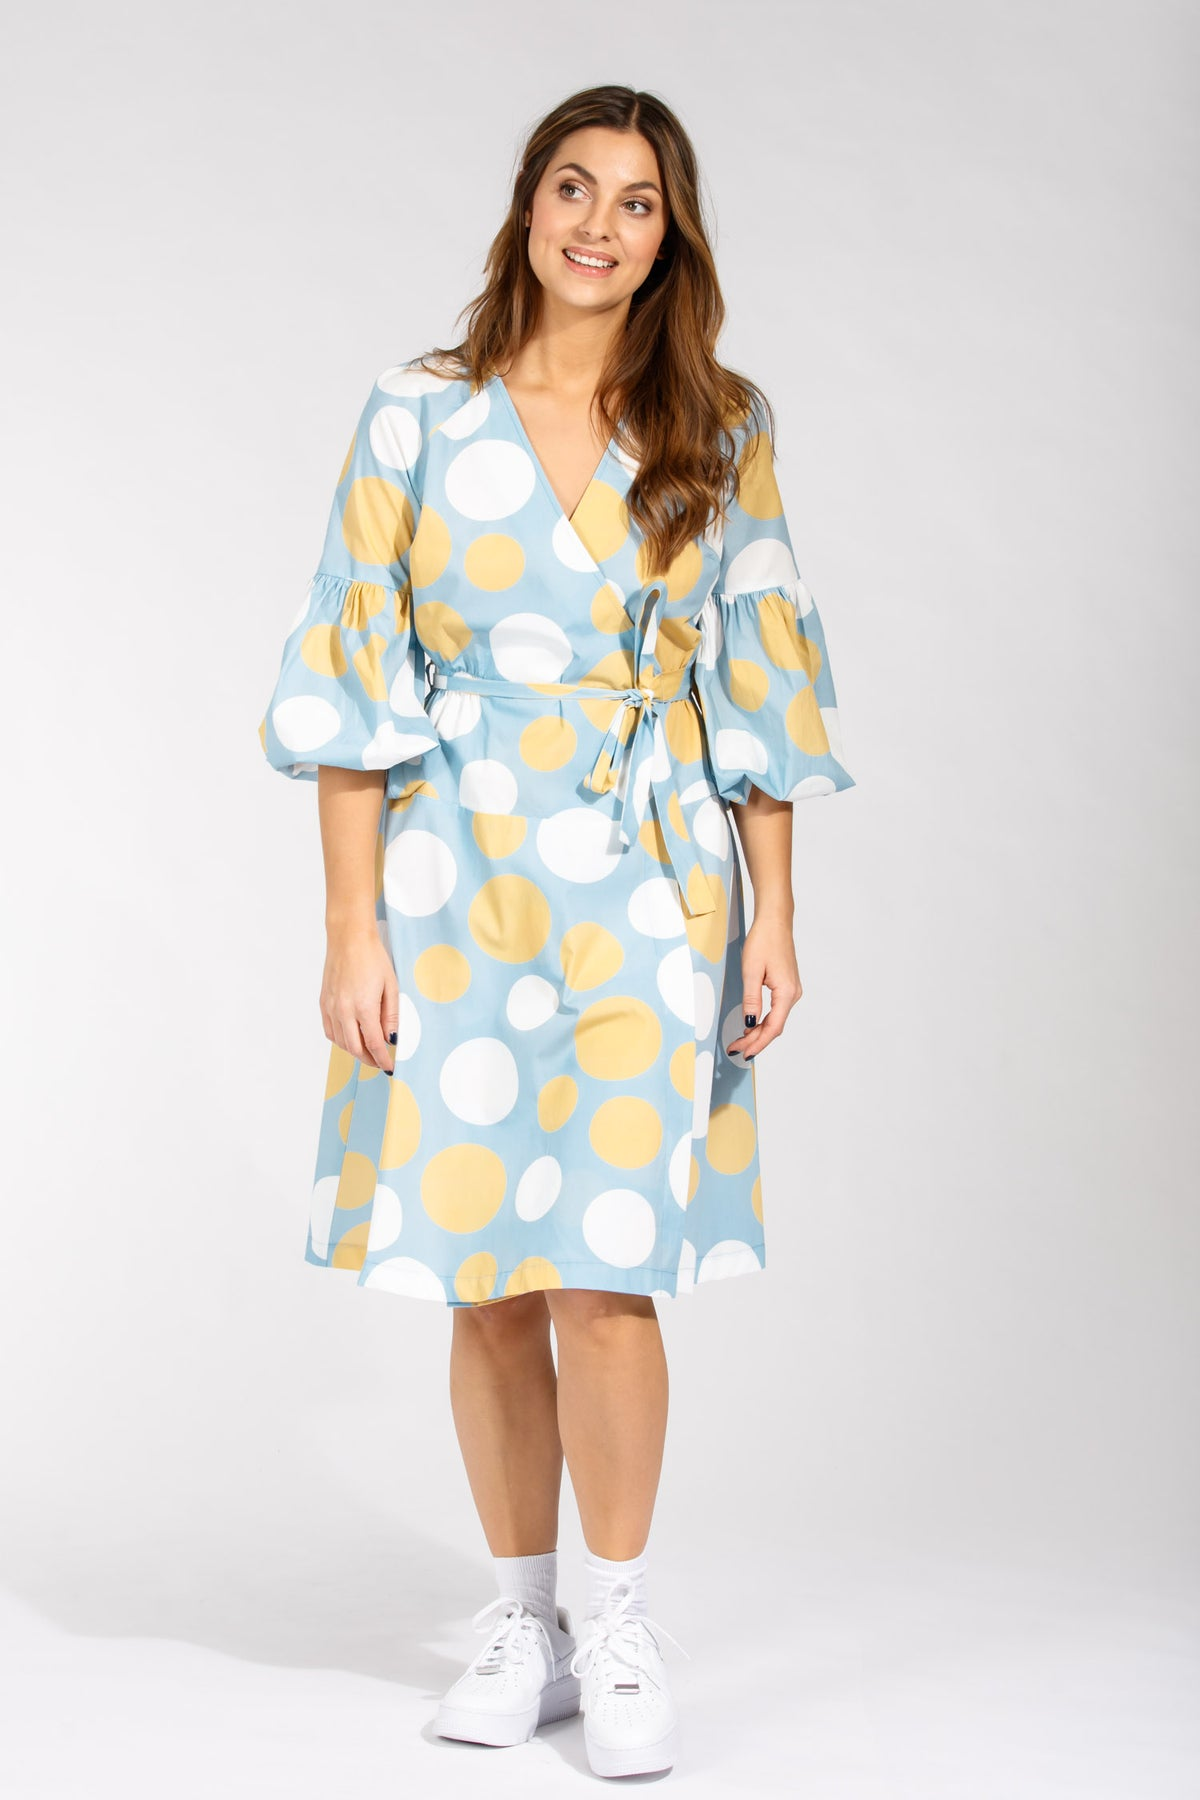 Colette poplin dress - Yellow dot